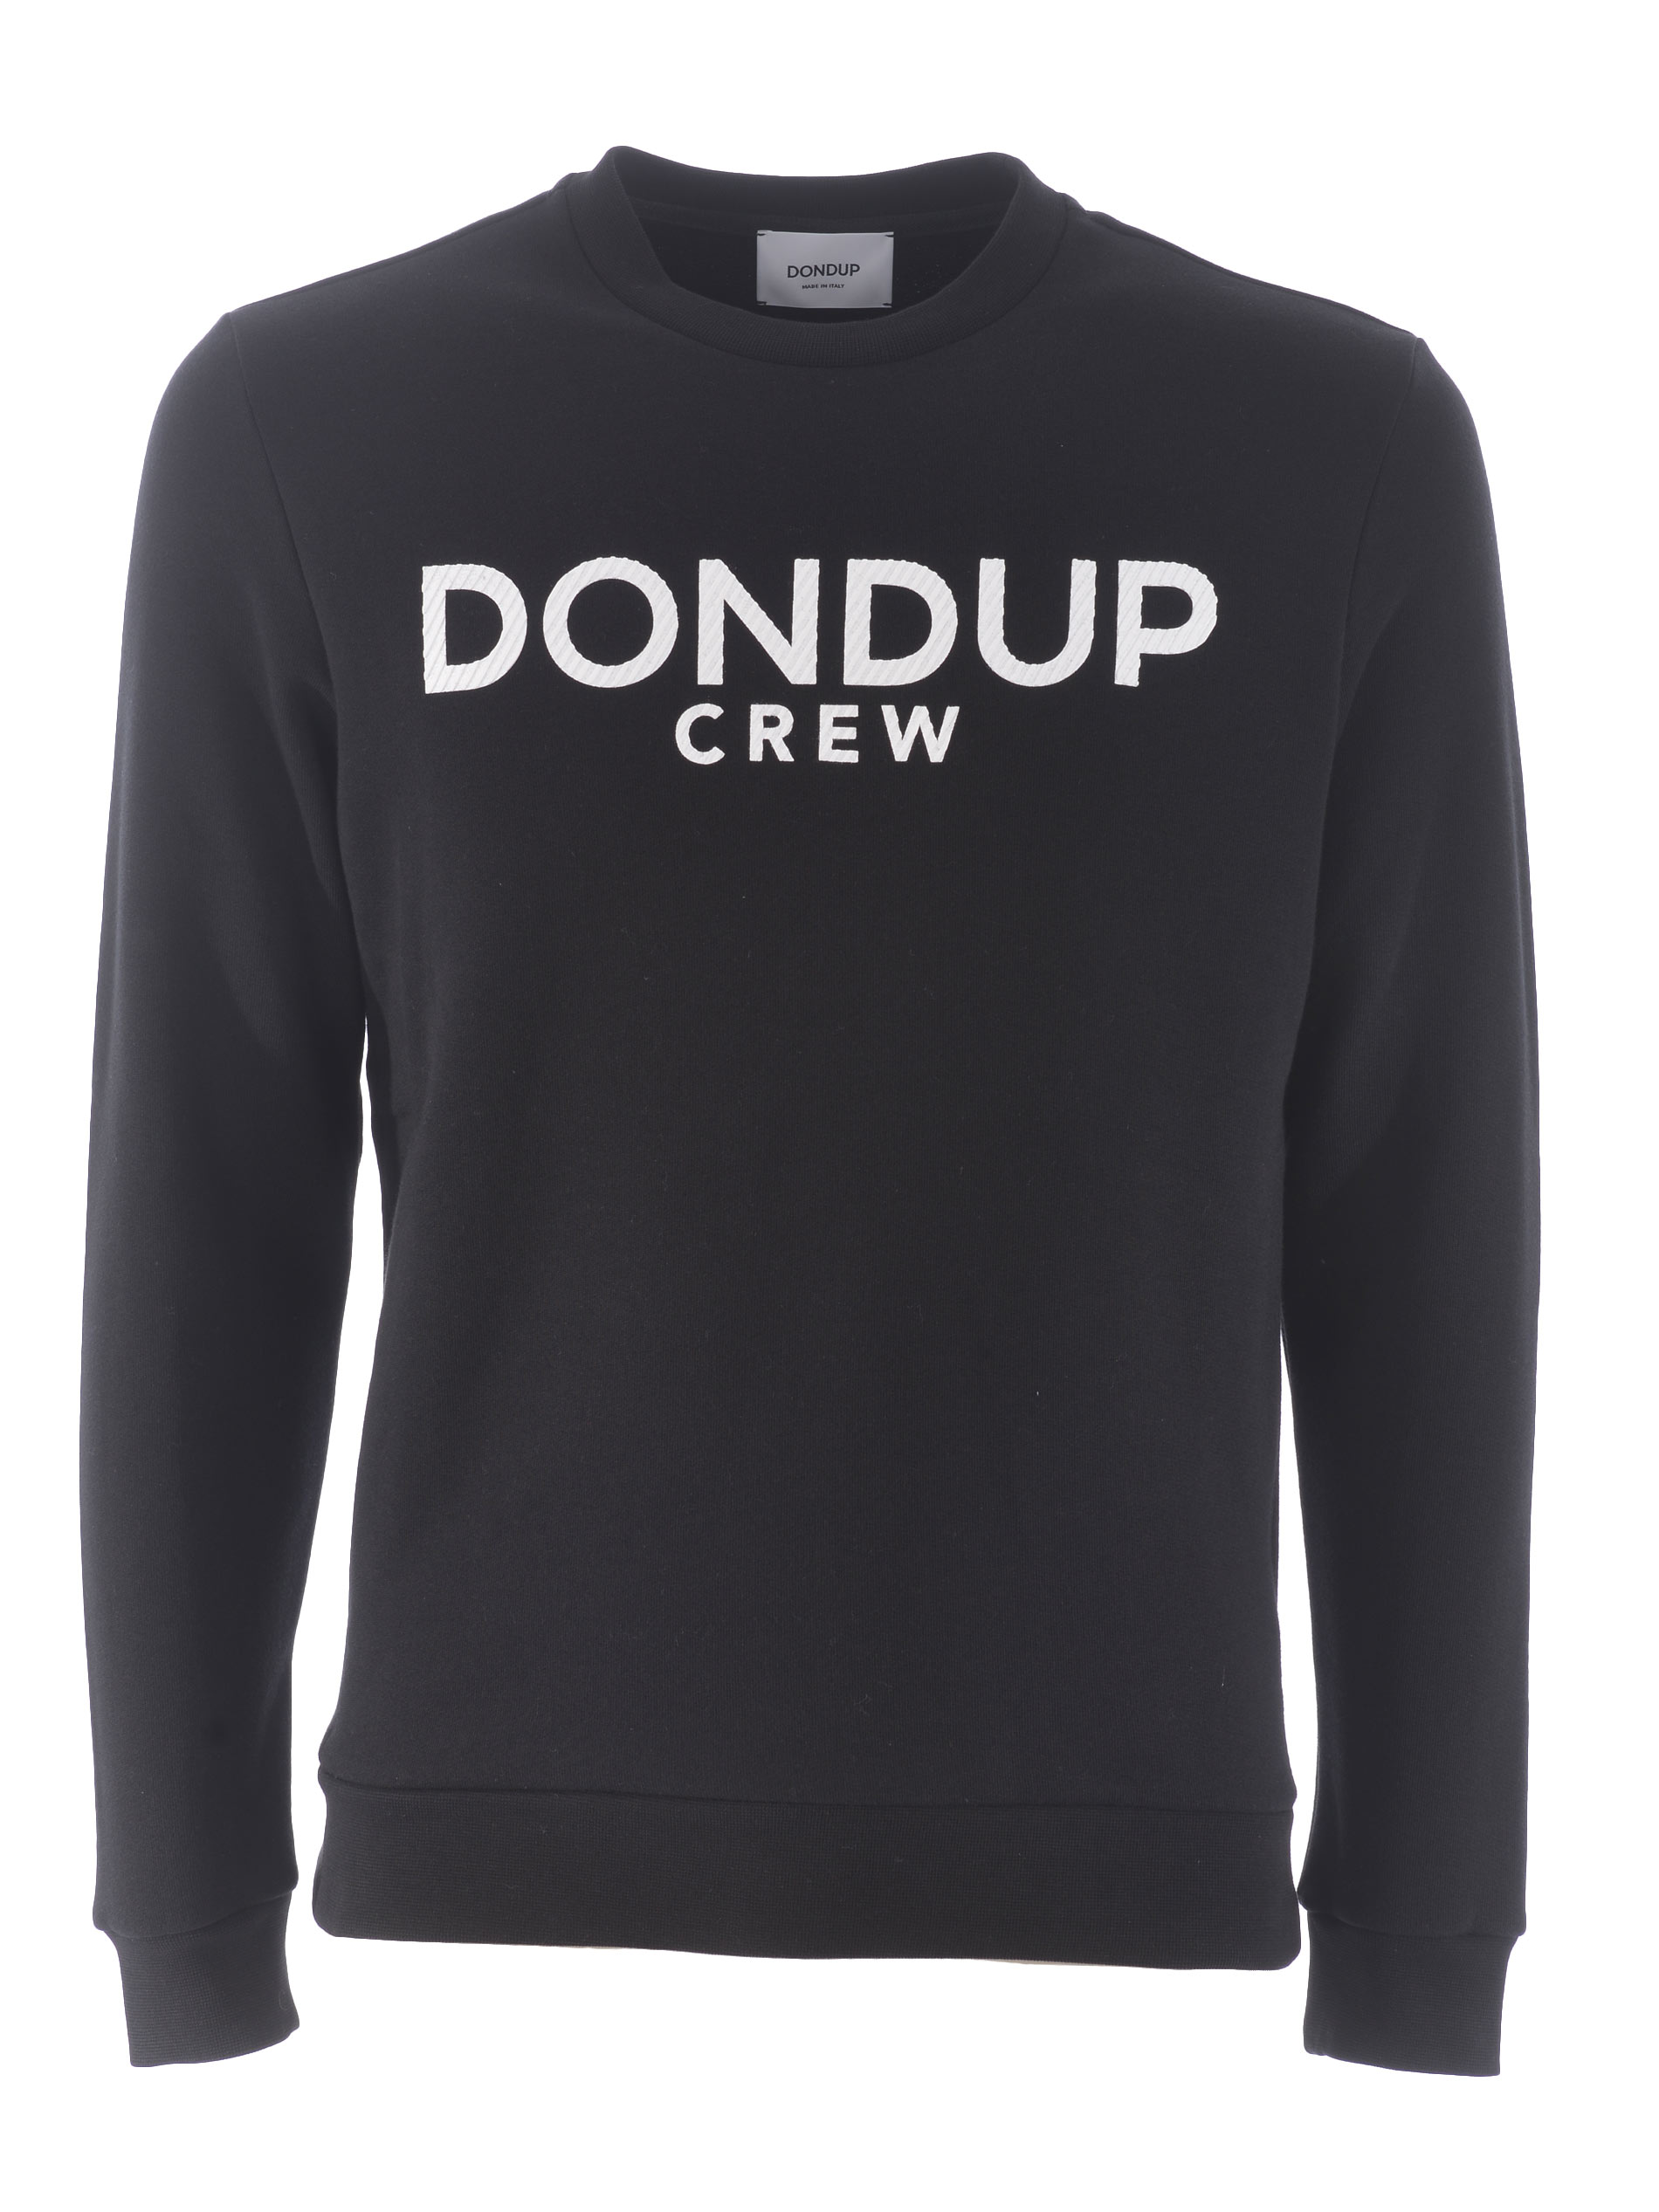 Dondup sweatshirt in stretch cotton